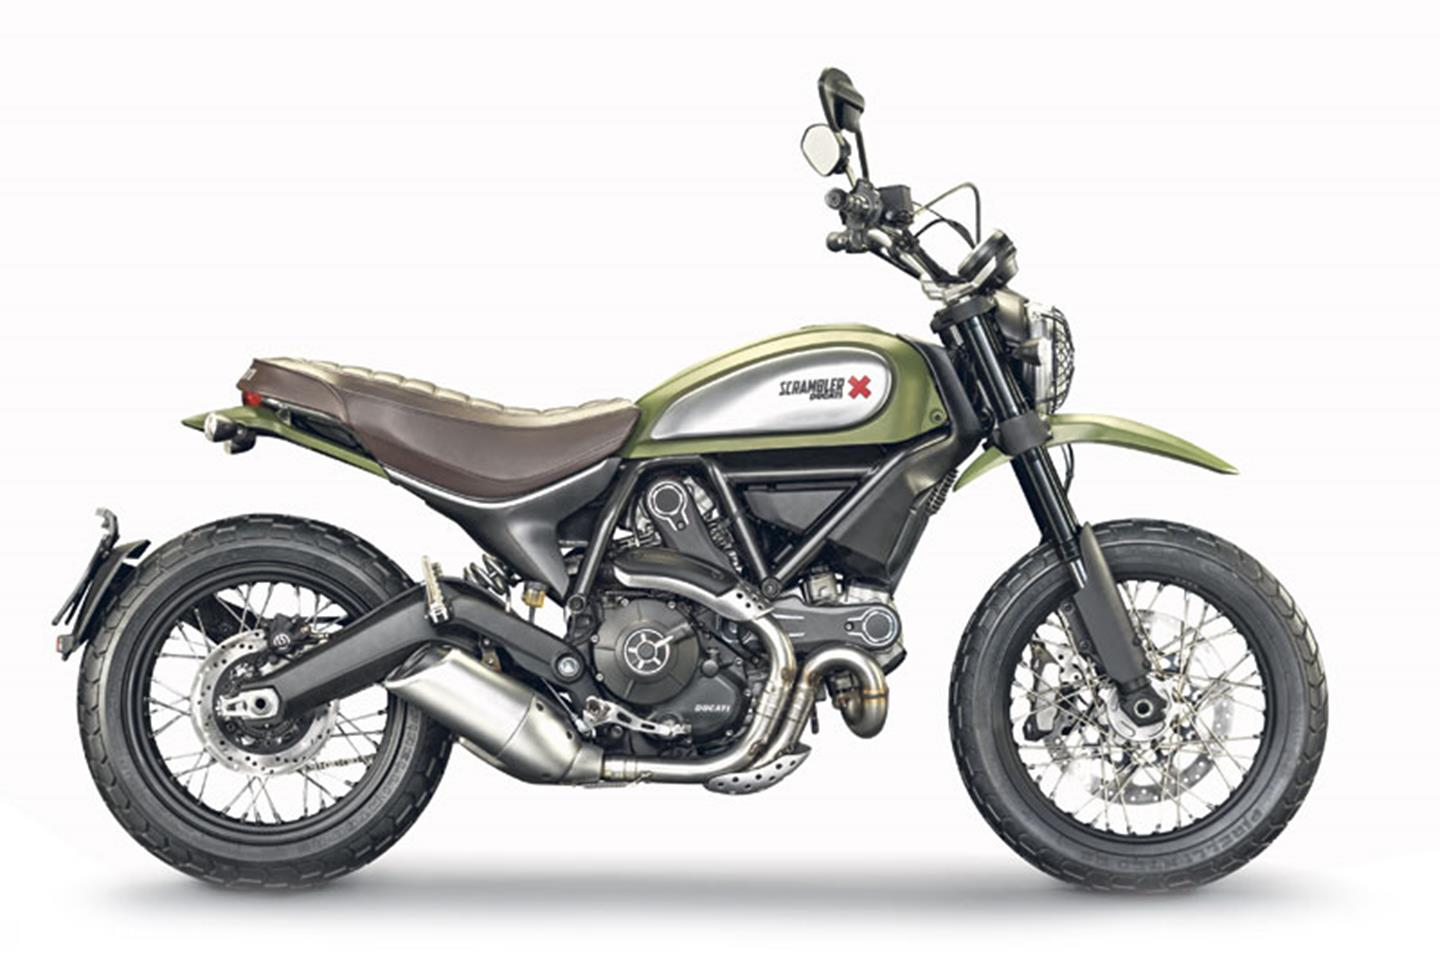 DUCATI SCRAMBLER 800 (2015 on) Review, Specs & Prices | MCN